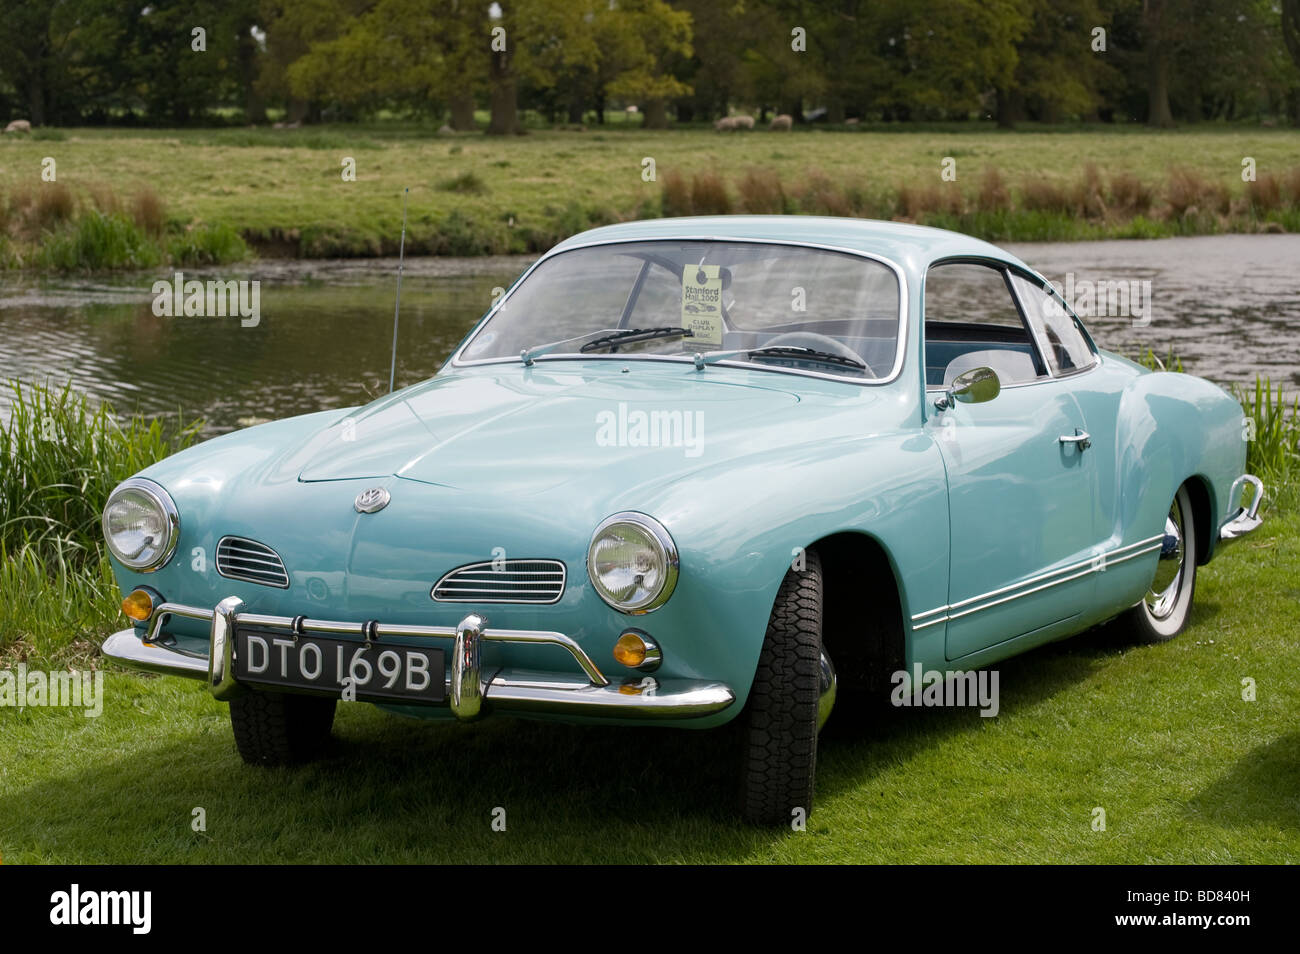 Your Volkswagen Stock Photos Images Alamy 1975 Karmann Ghia Blue Coupe Car Image